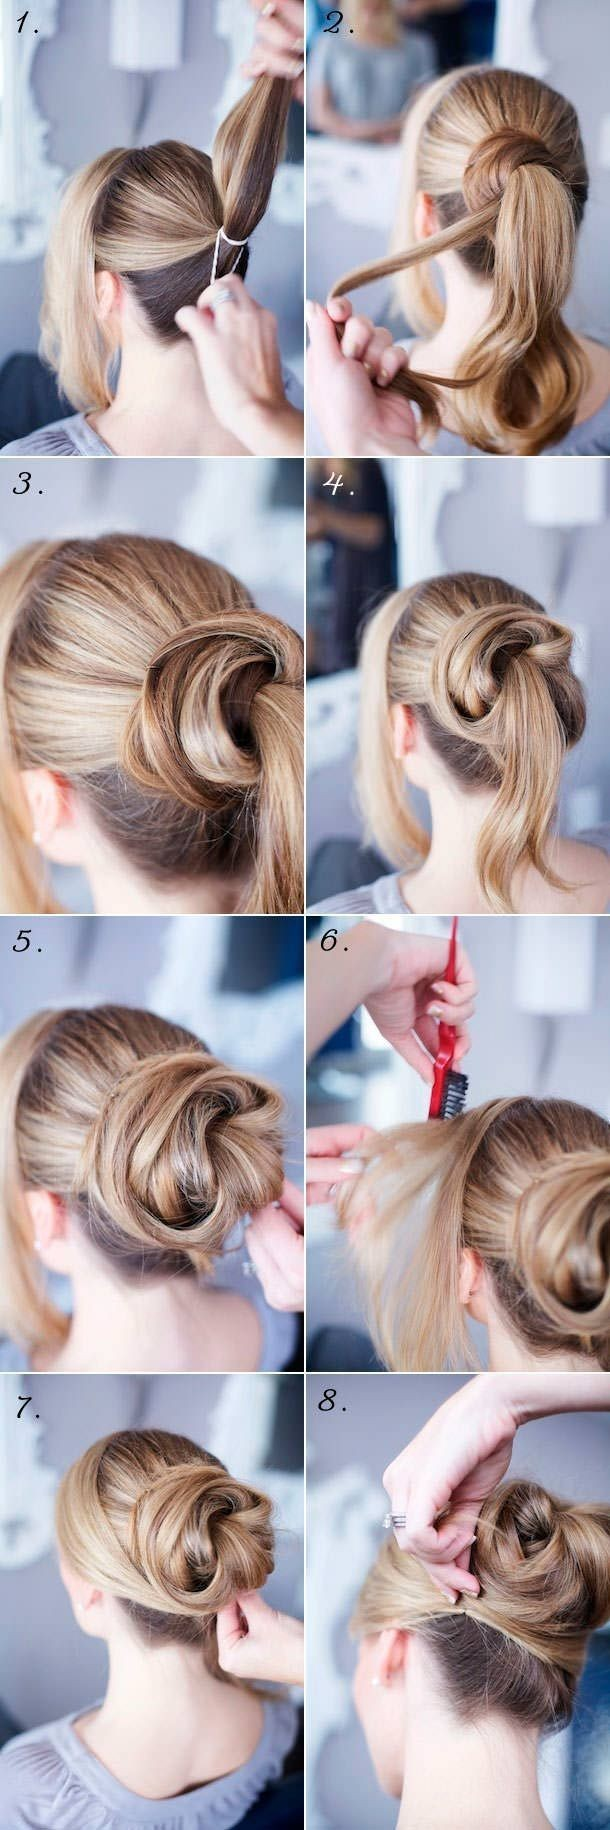 14 easy step by step updo hairstyles tutorials pretty designs cute updo tutorial for long hair baditri Image collections